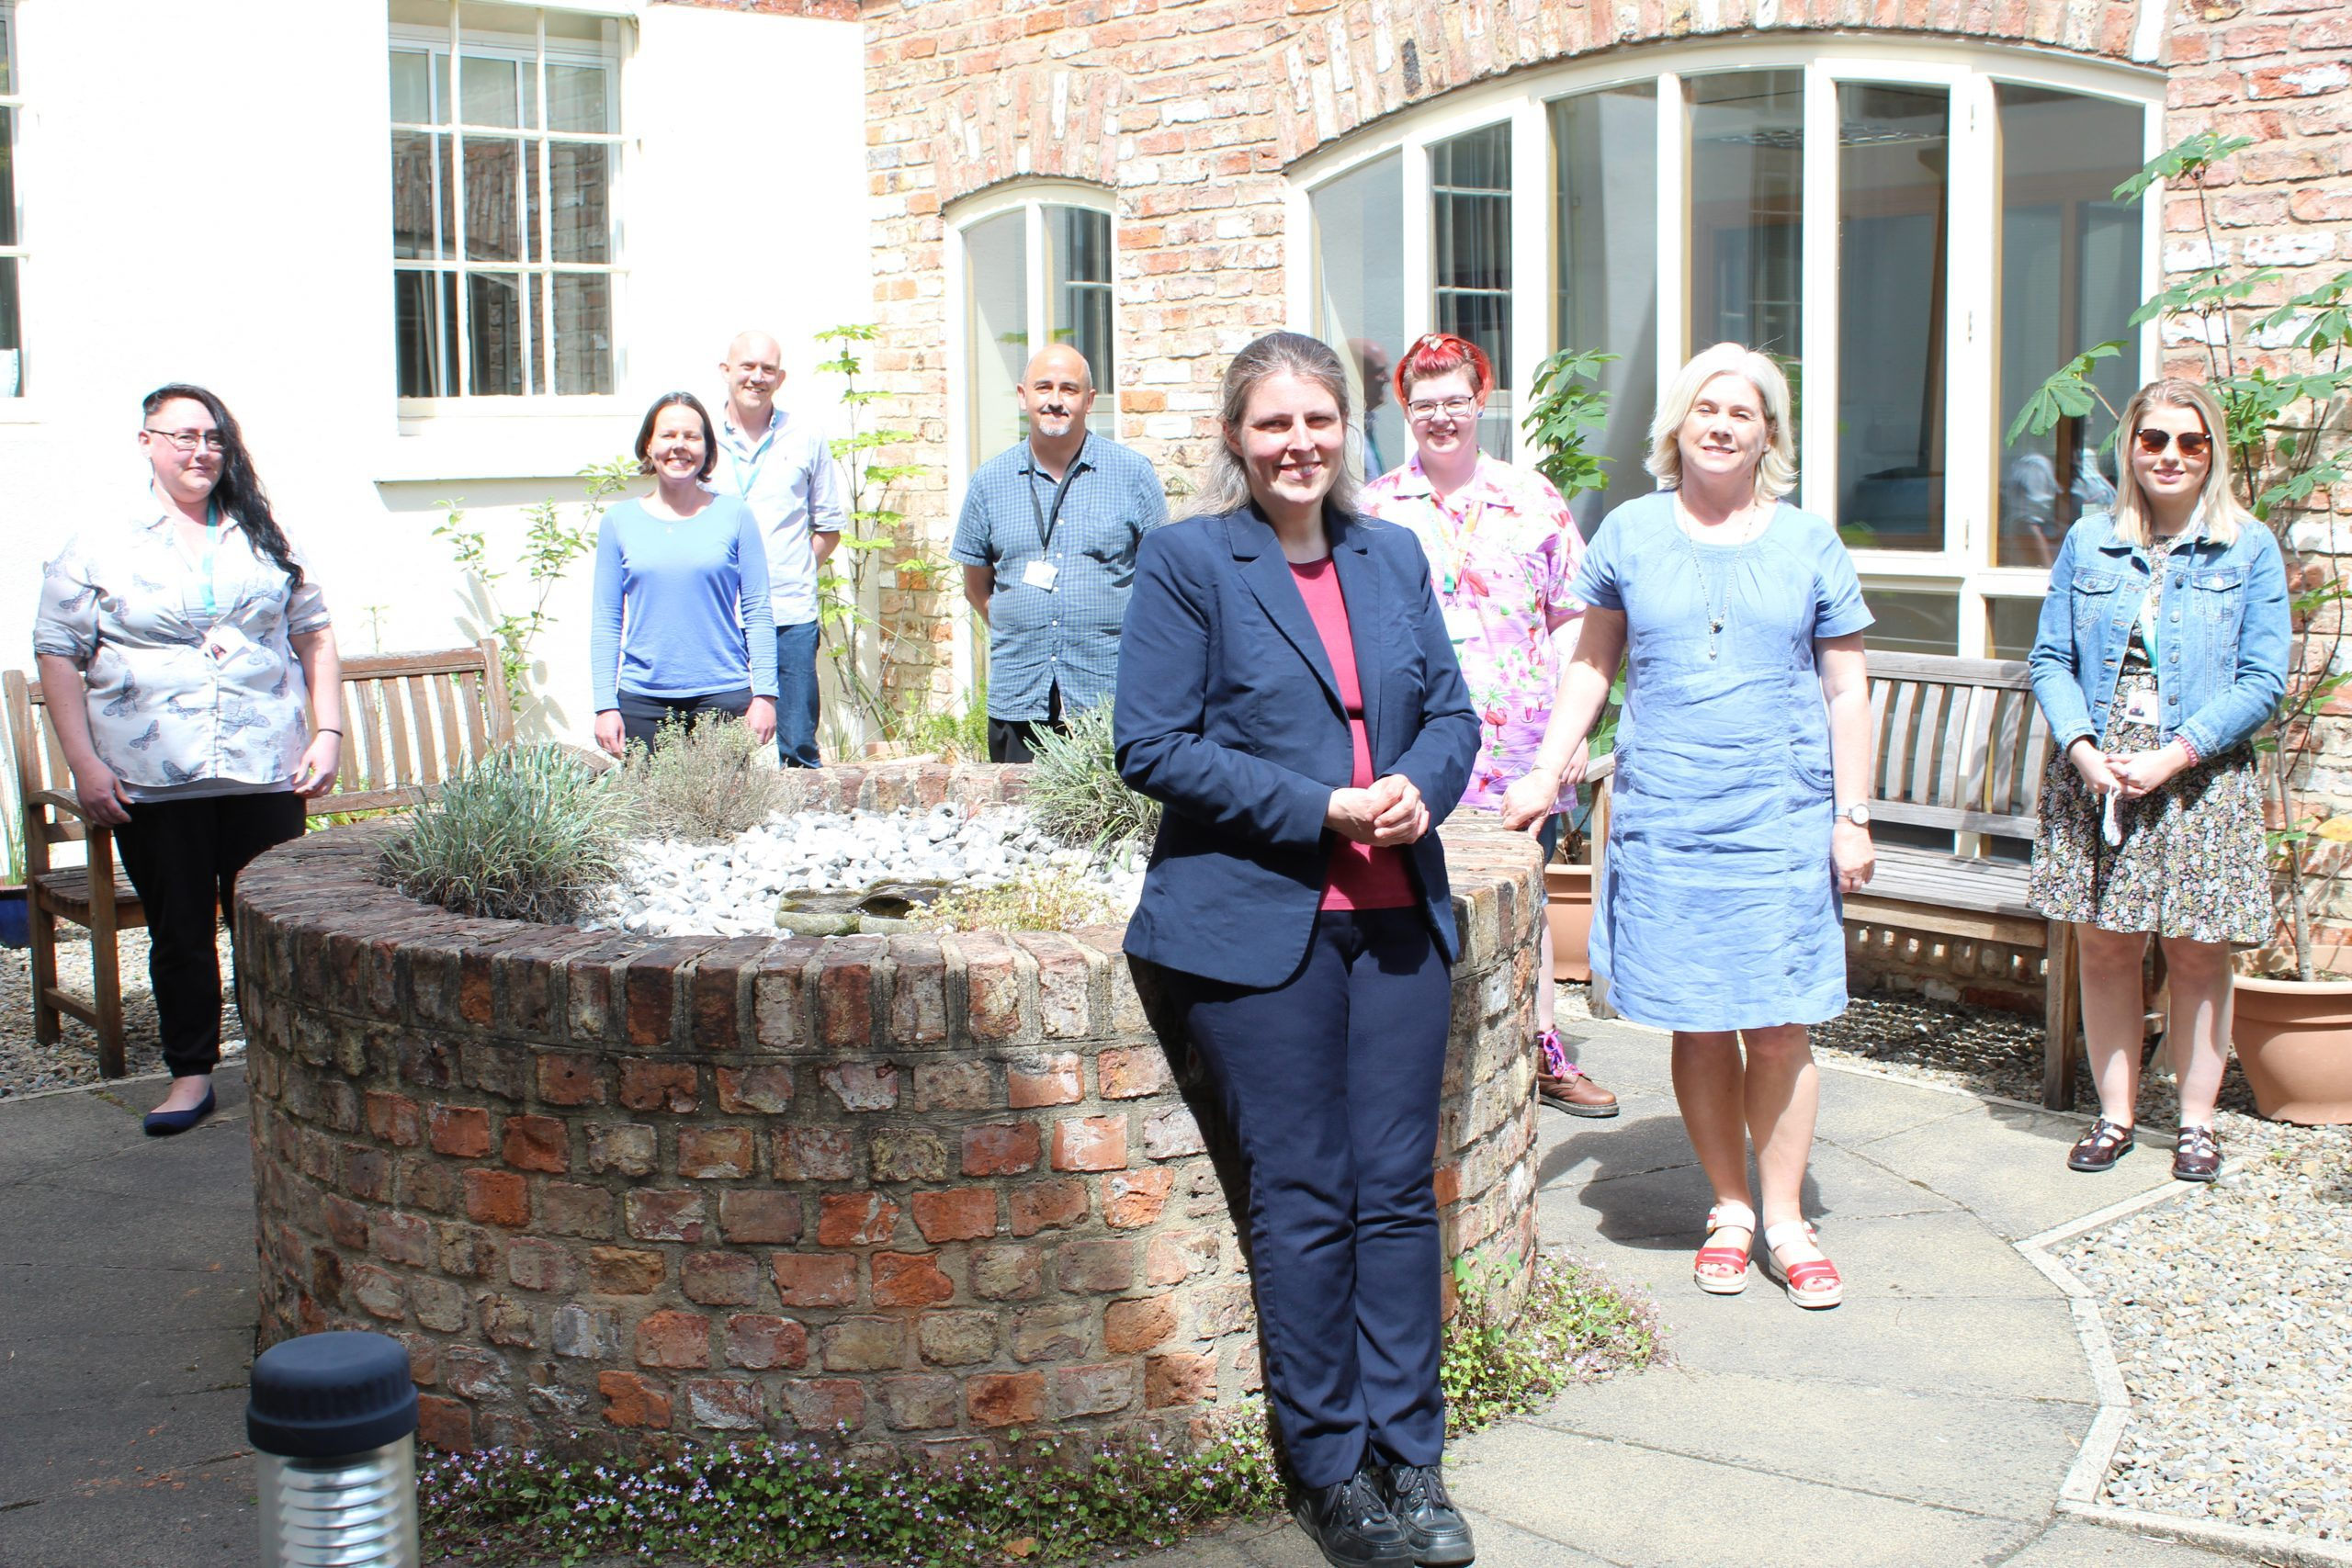 8 people, 6 female and 2 male, stood spaced apart in a courtyard area. There is a raised brick cirucular fountain in the middle and brick wall with large windows behind them. Everyone is smiling and looking at the camera.